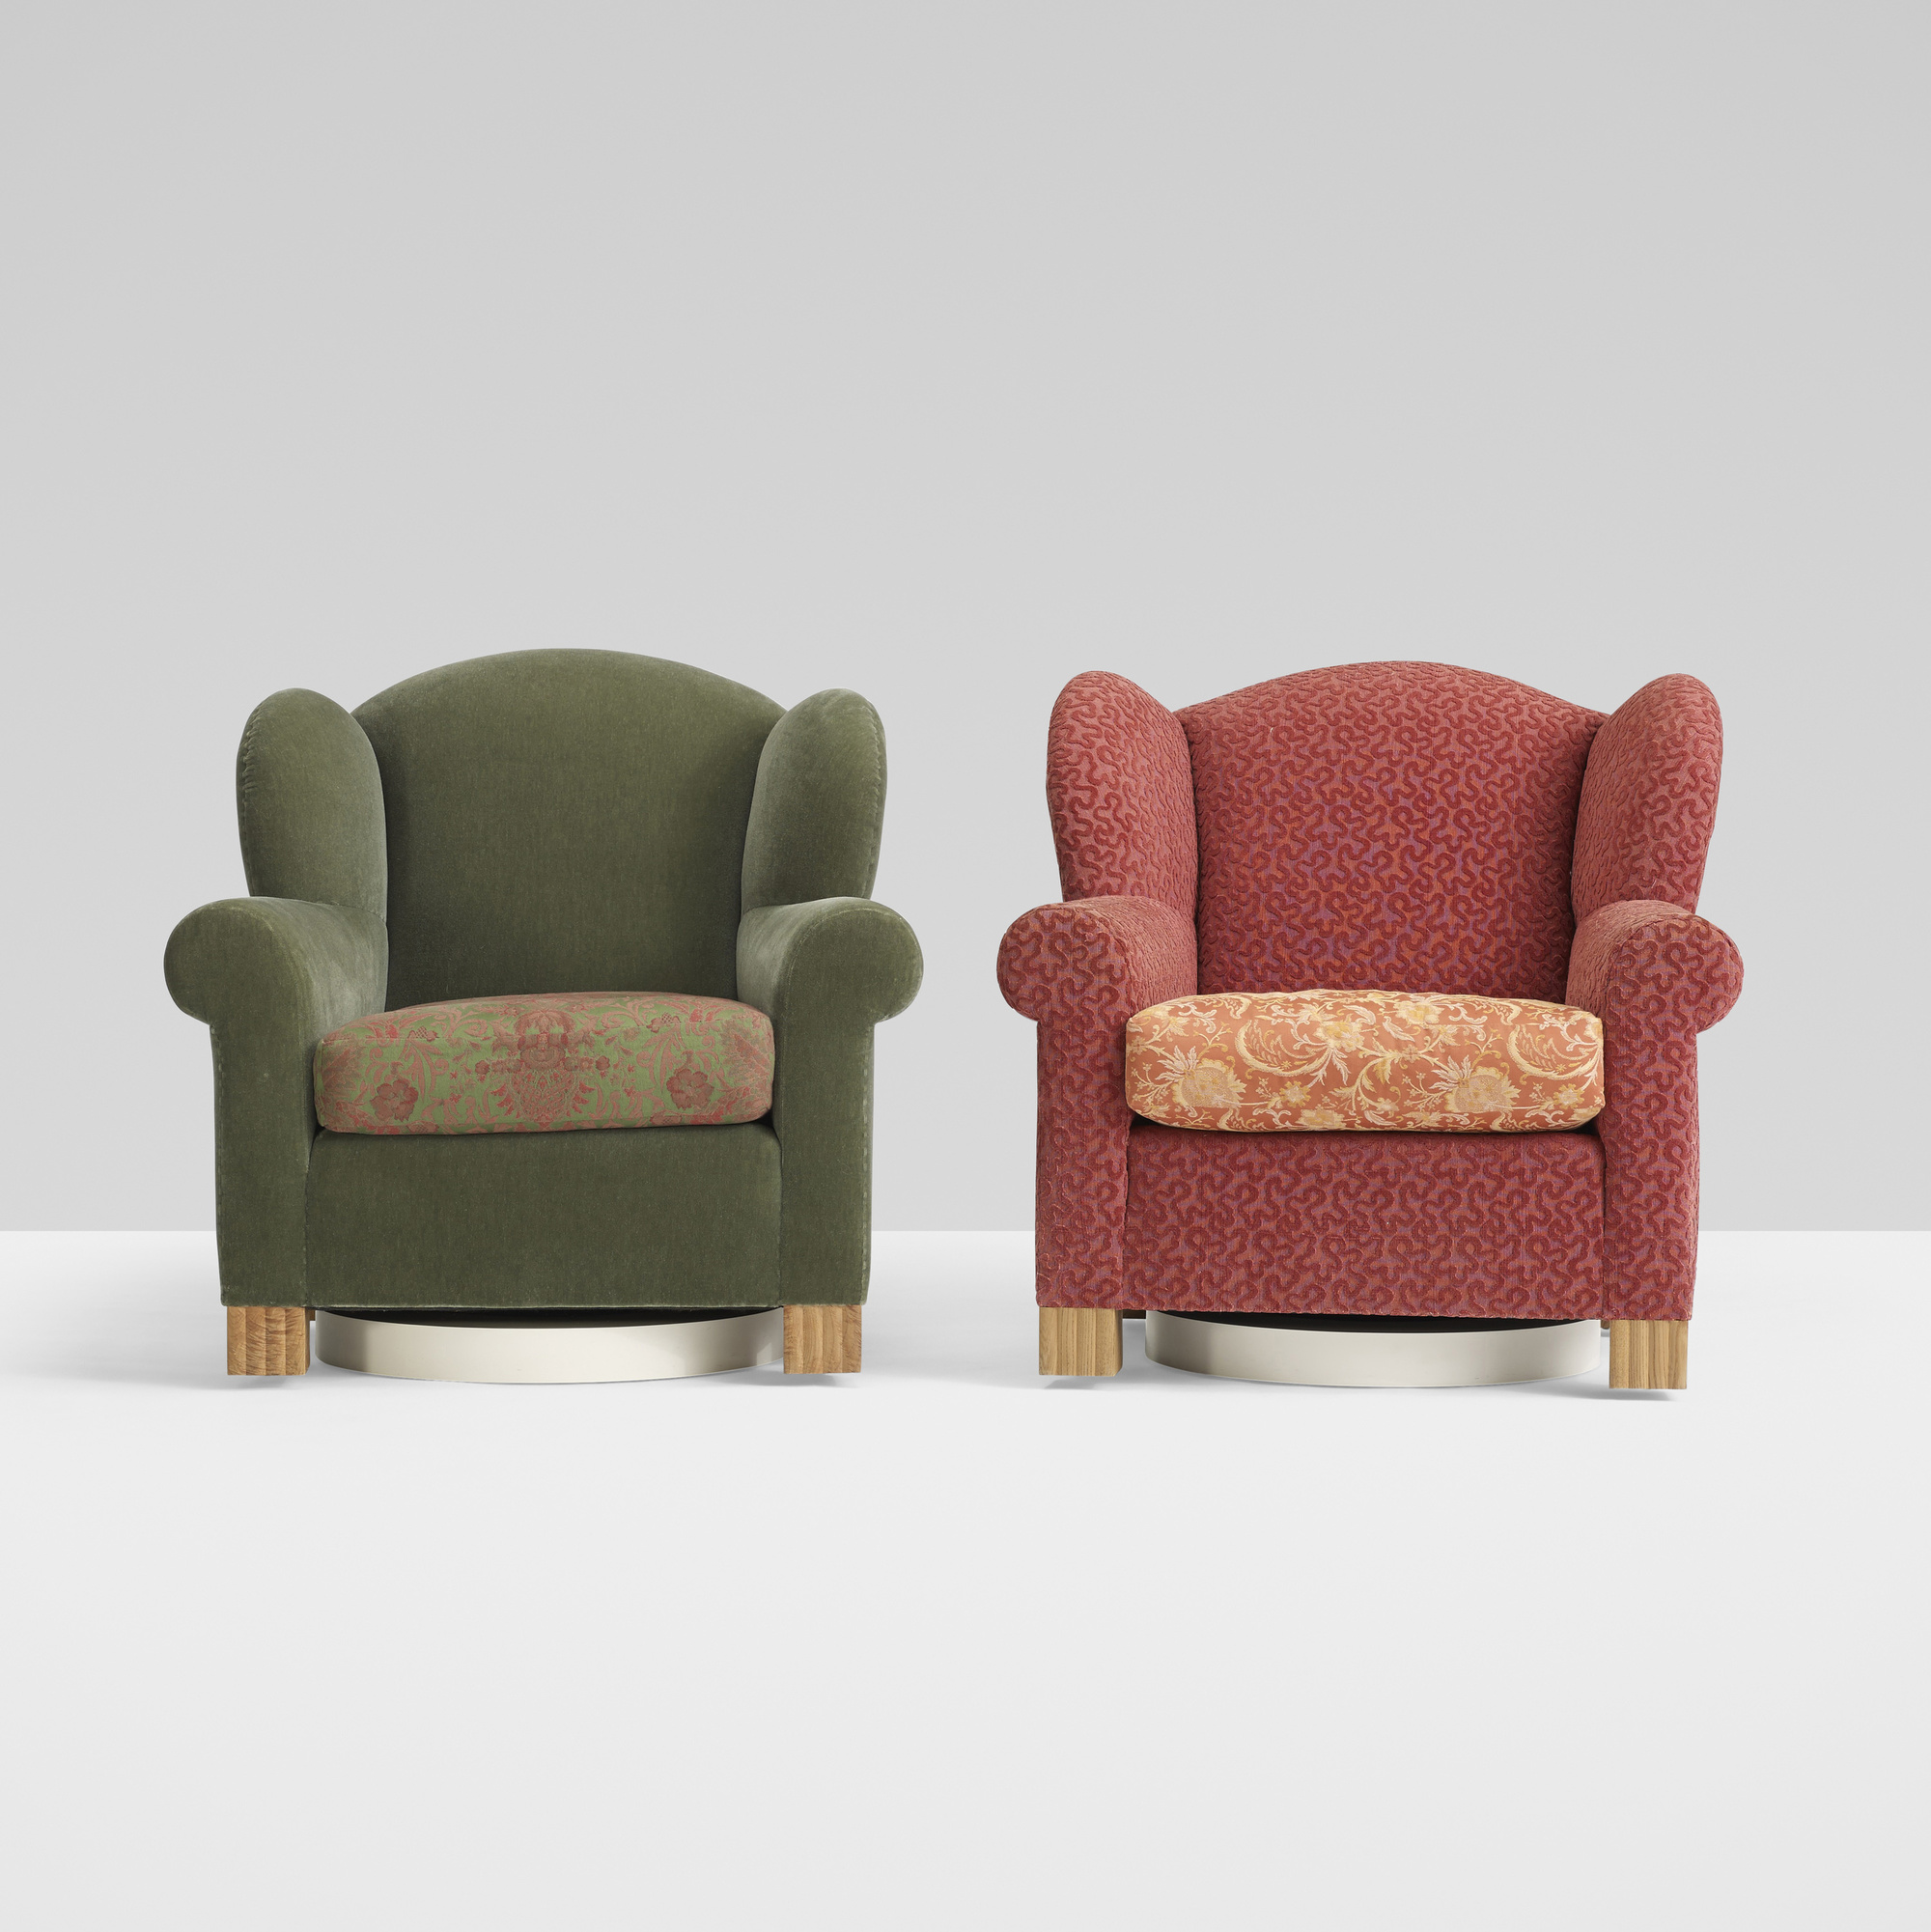 293: Roy McMakin / pair of Swivel Wingback chairs for the Young residence, Chicago (1 of 3)